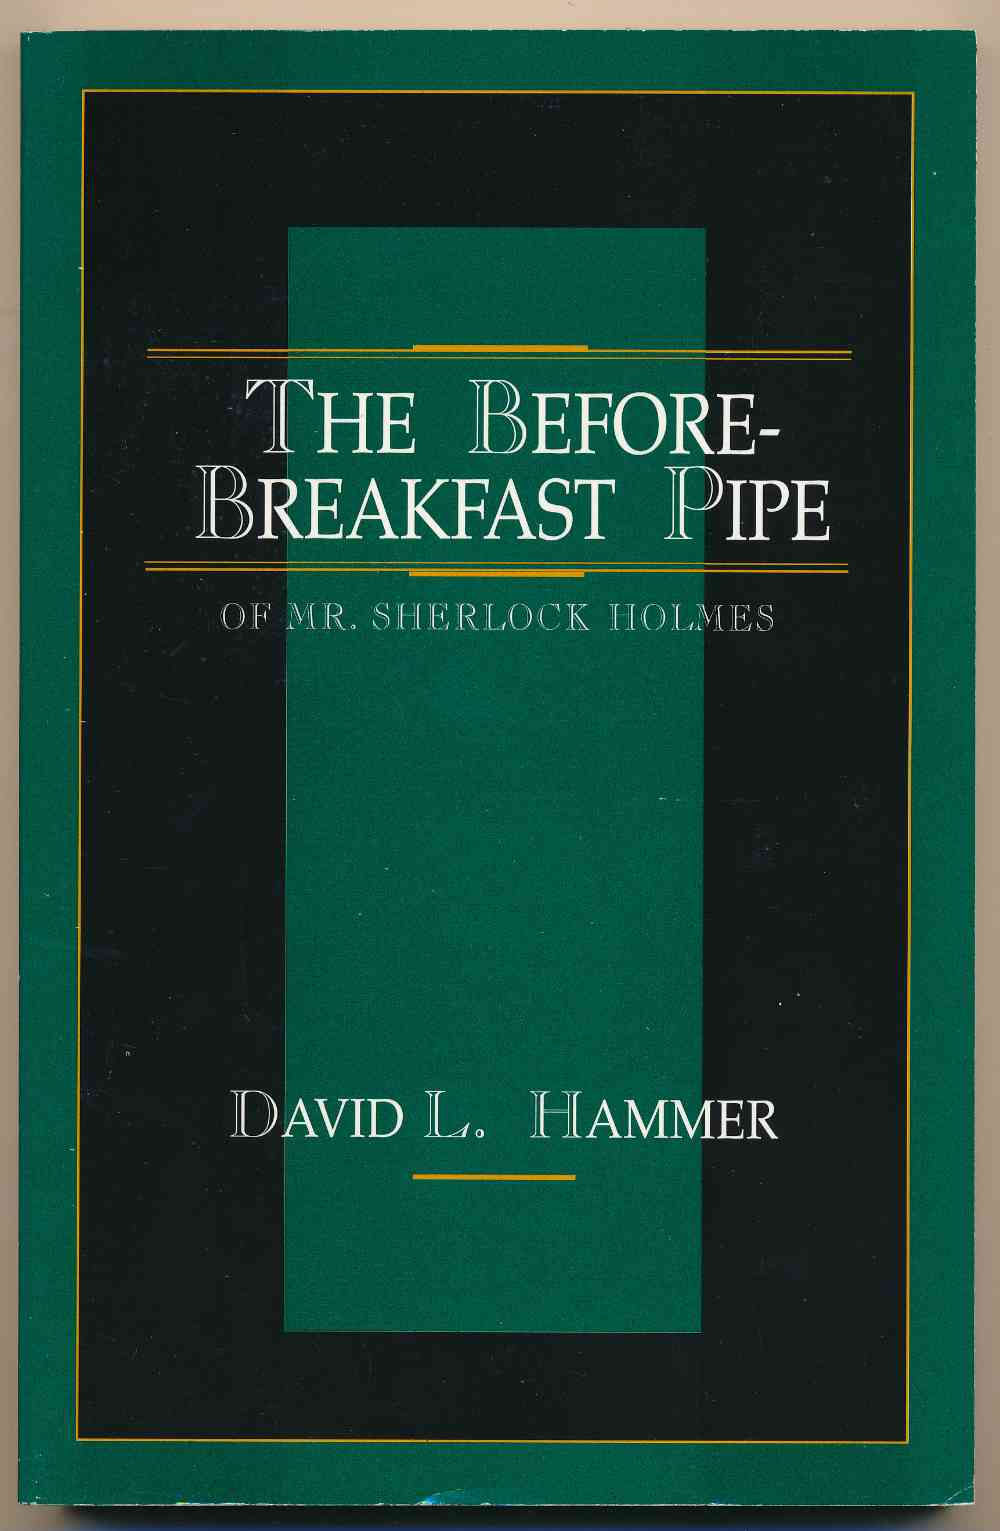 The before breakfast pipe of Mr. Sherlock Holmes